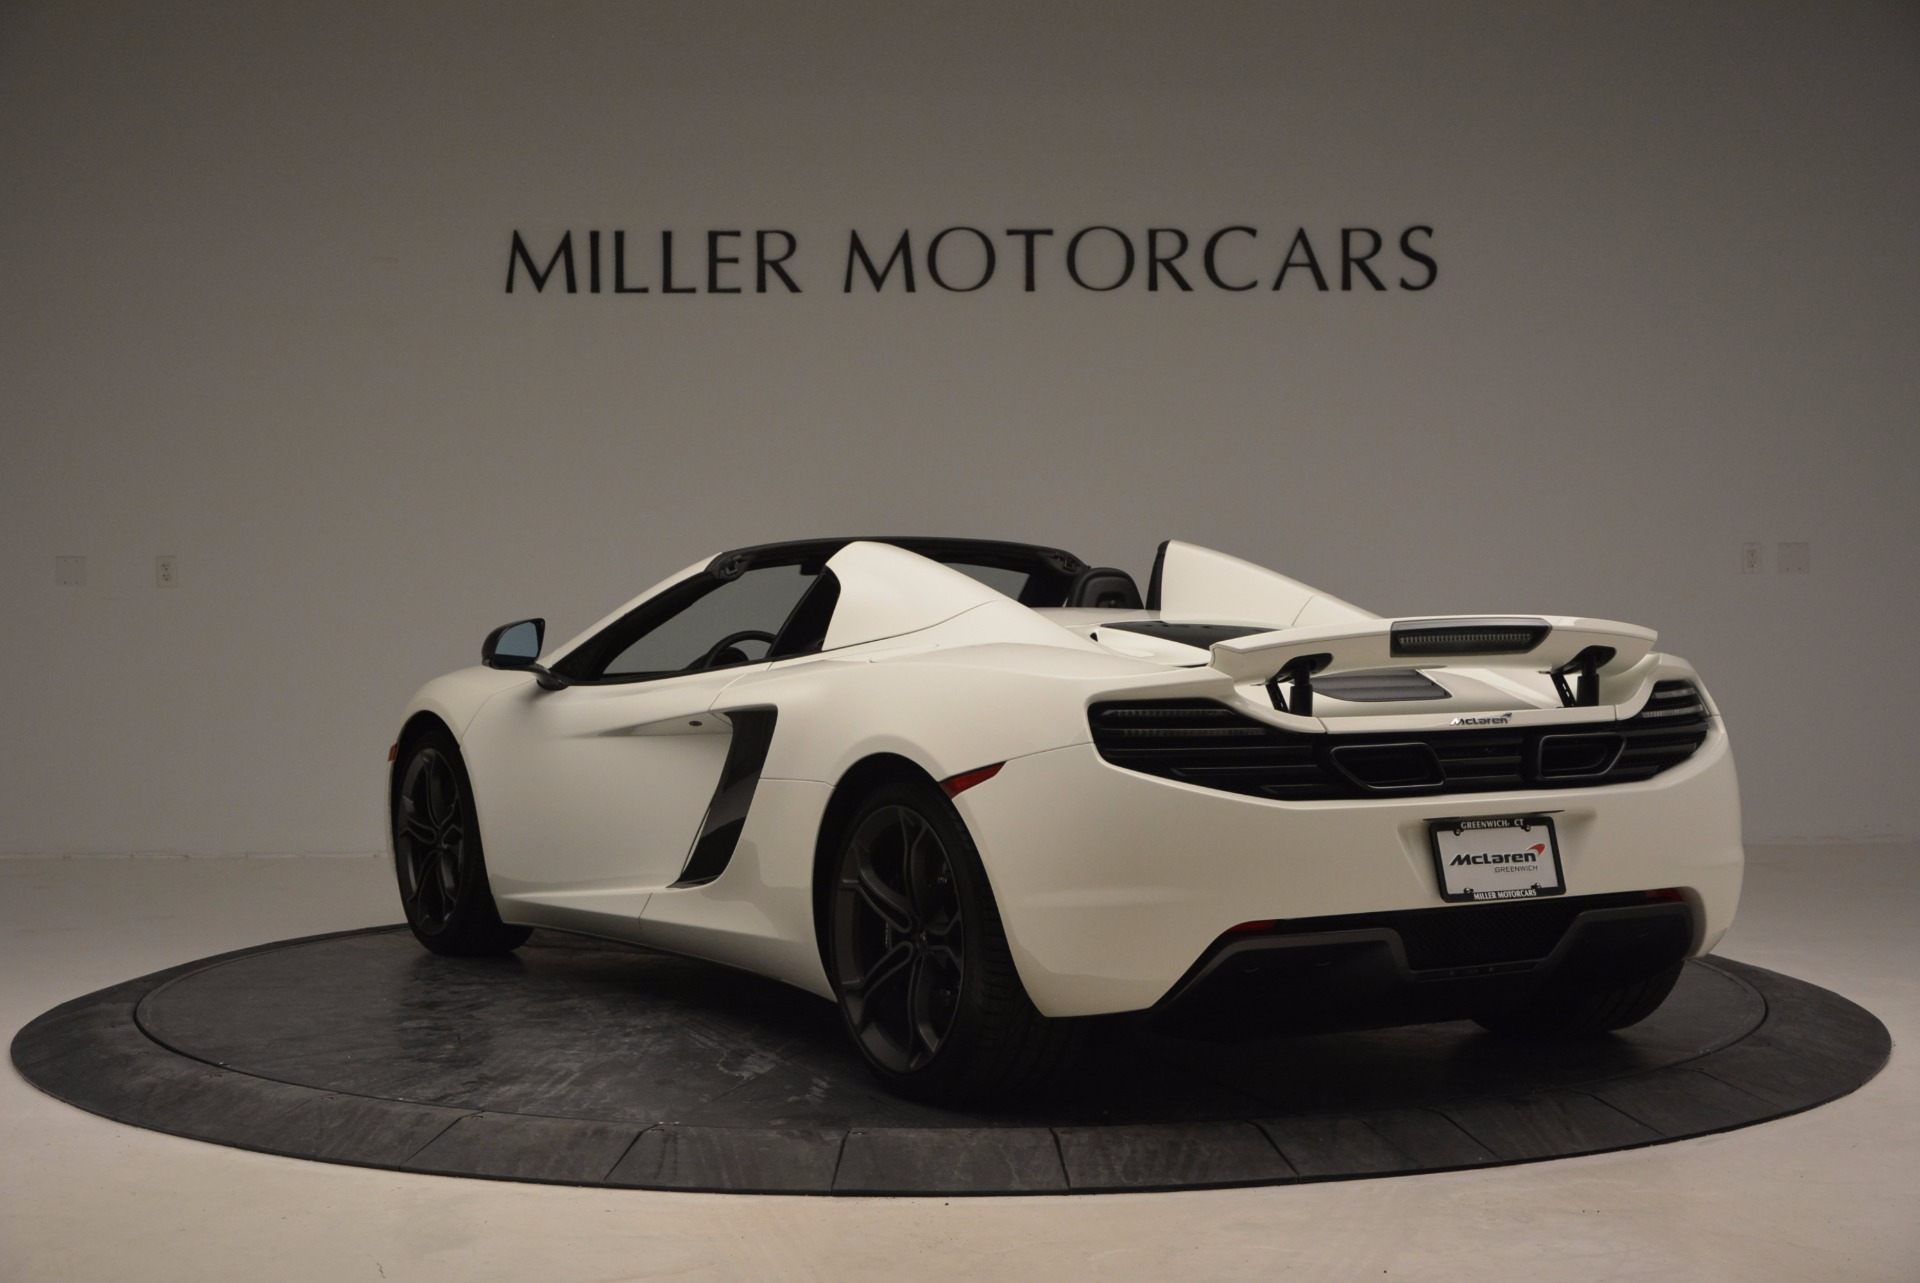 Used 2014 McLaren MP4-12C Spider For Sale In Greenwich, CT. Alfa Romeo of Greenwich, 3136 908_p5